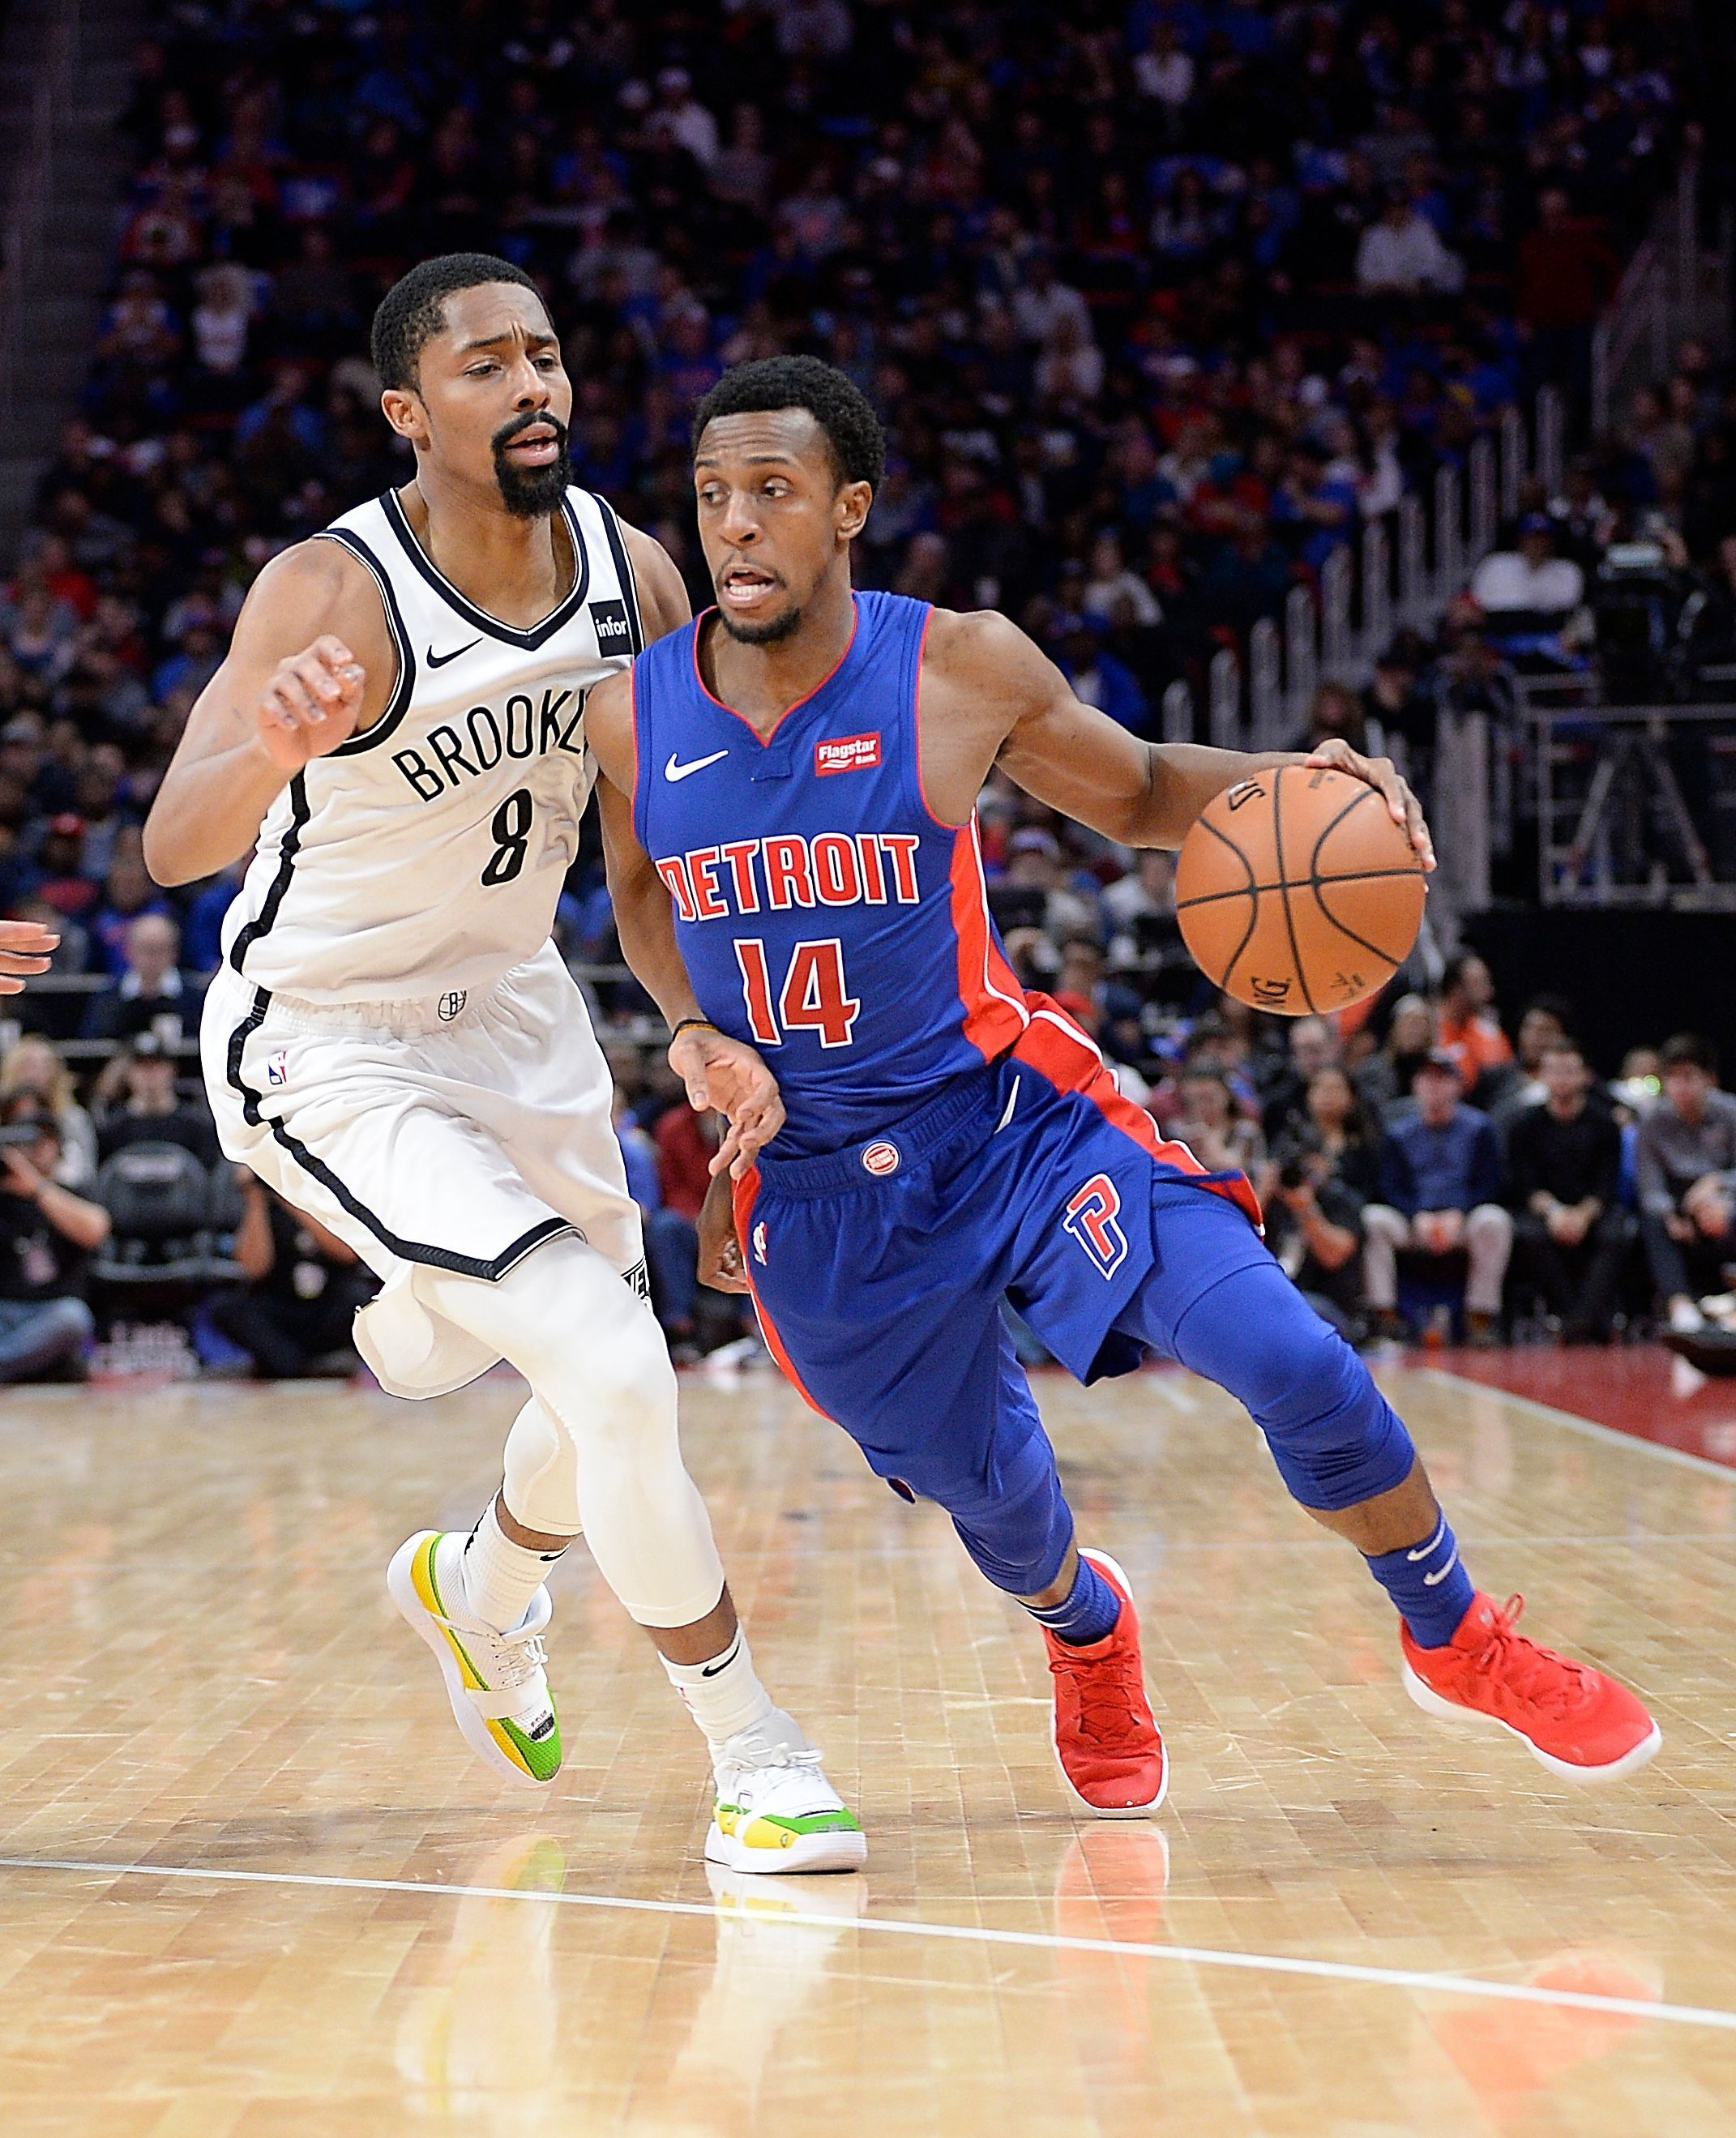 Pistons guard Ish Smith returned earlier this week after missing 19 games due to injury.